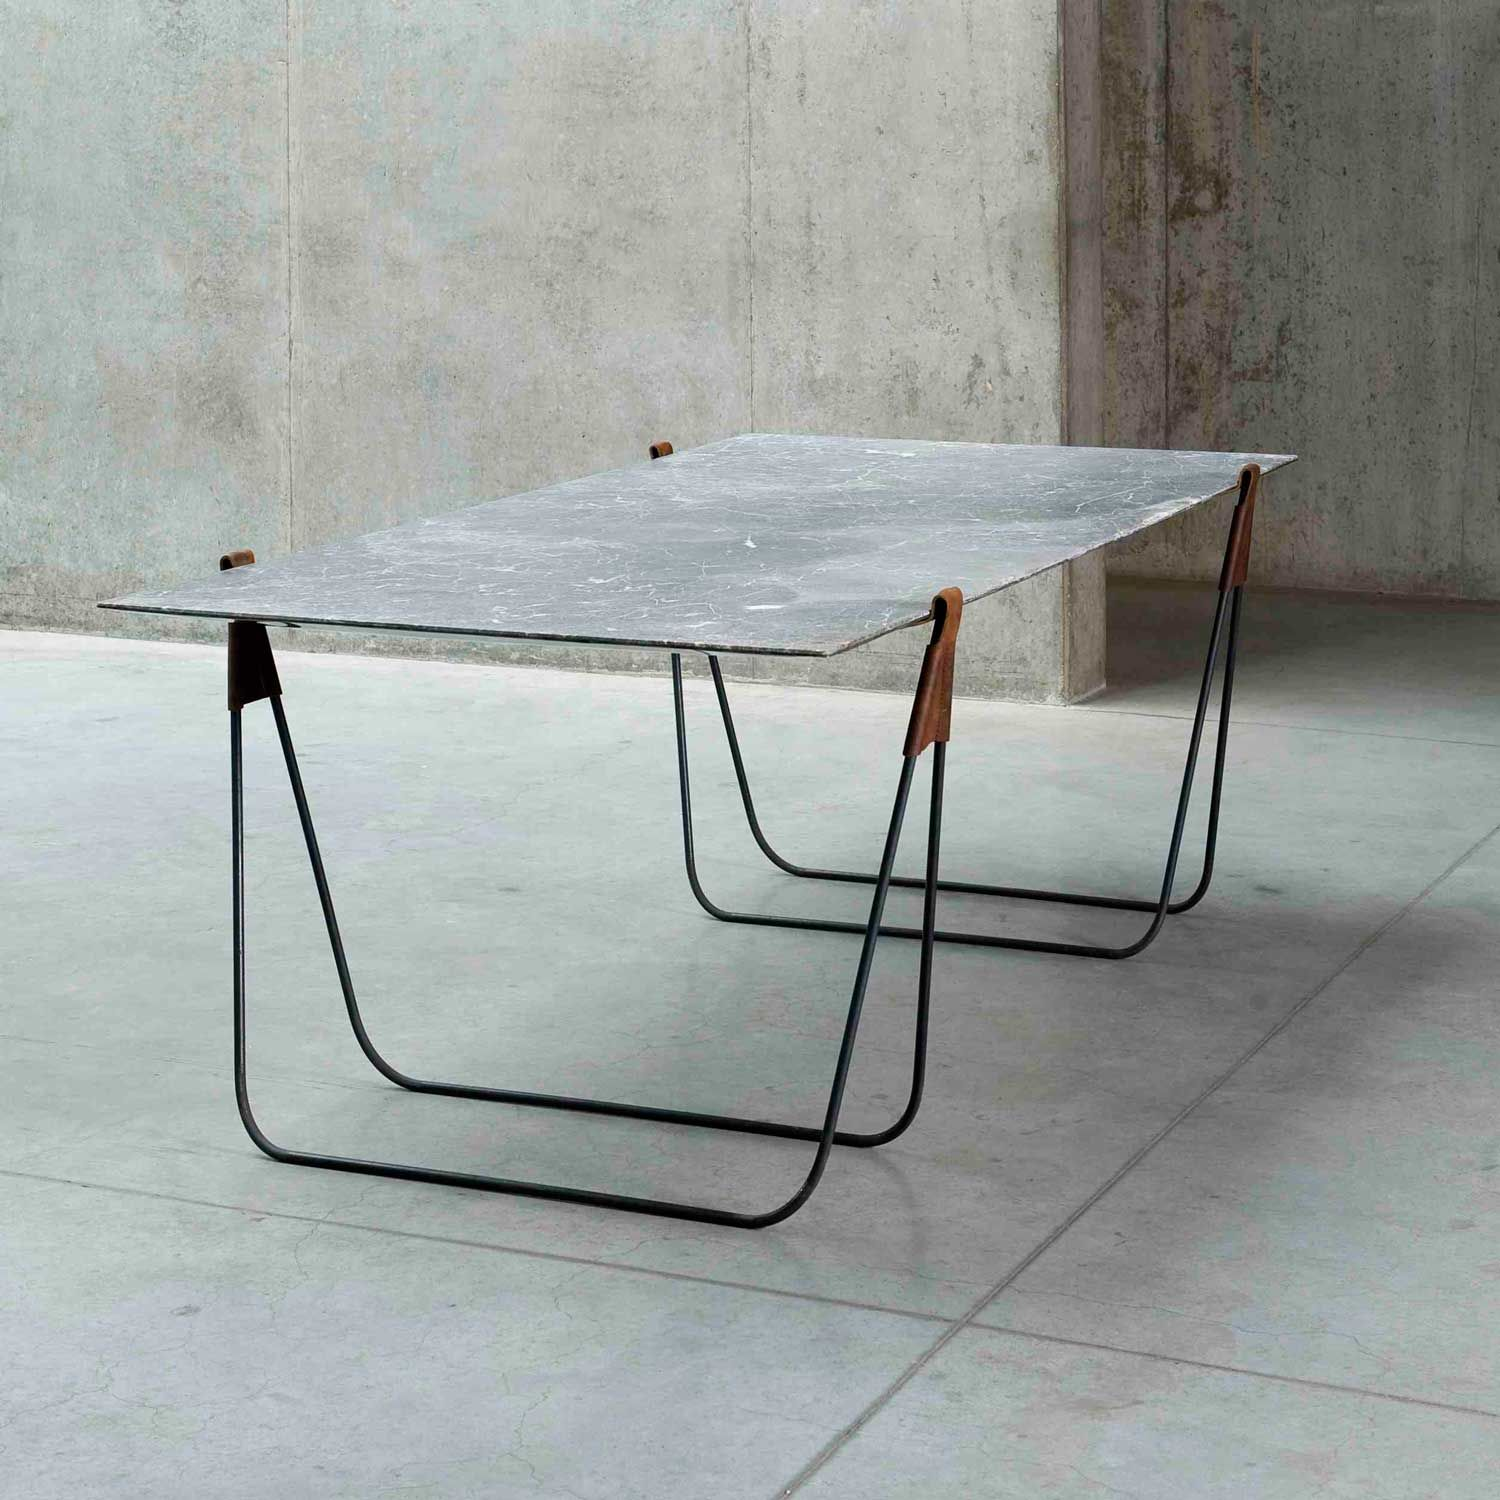 Wonderful In Vein   A Marble Trestle Table That Can Also Be Used As A Mirror When  Leaned Up Against The Wall. Made Of Marble, Leather   By Ben Storms